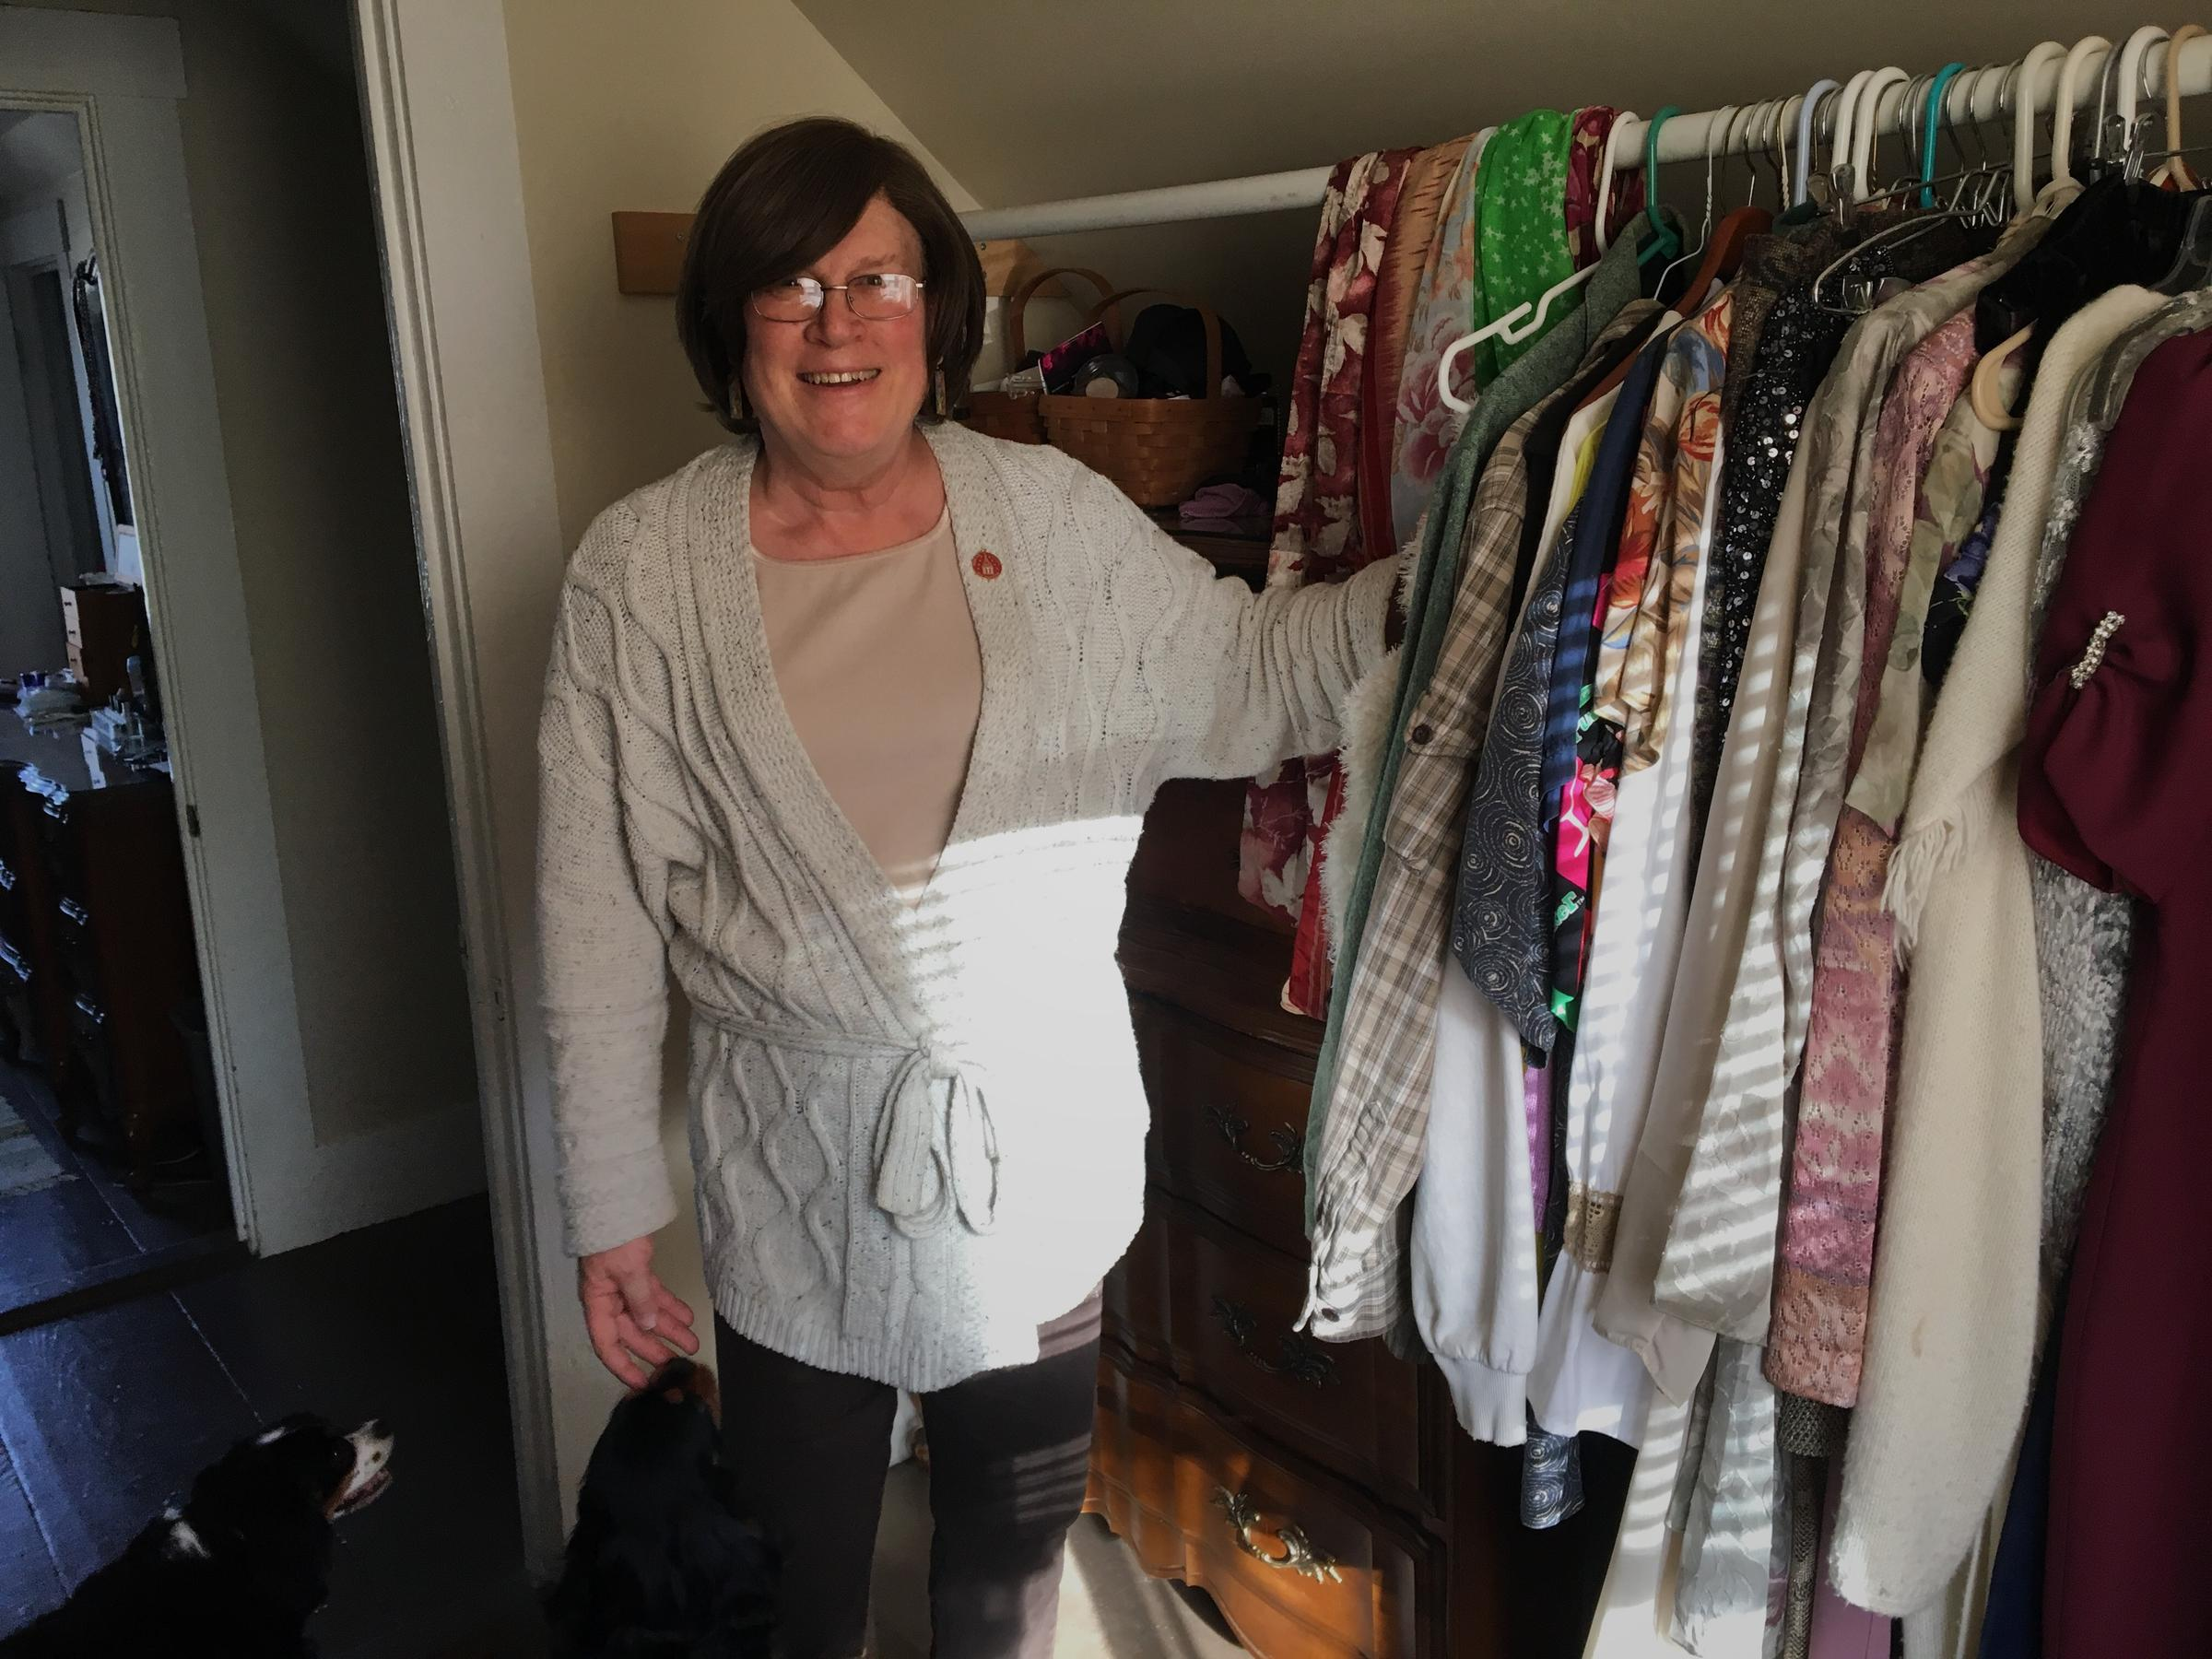 1581c55b39a Gerri Cannon in her closet with her two King Charles spaniels